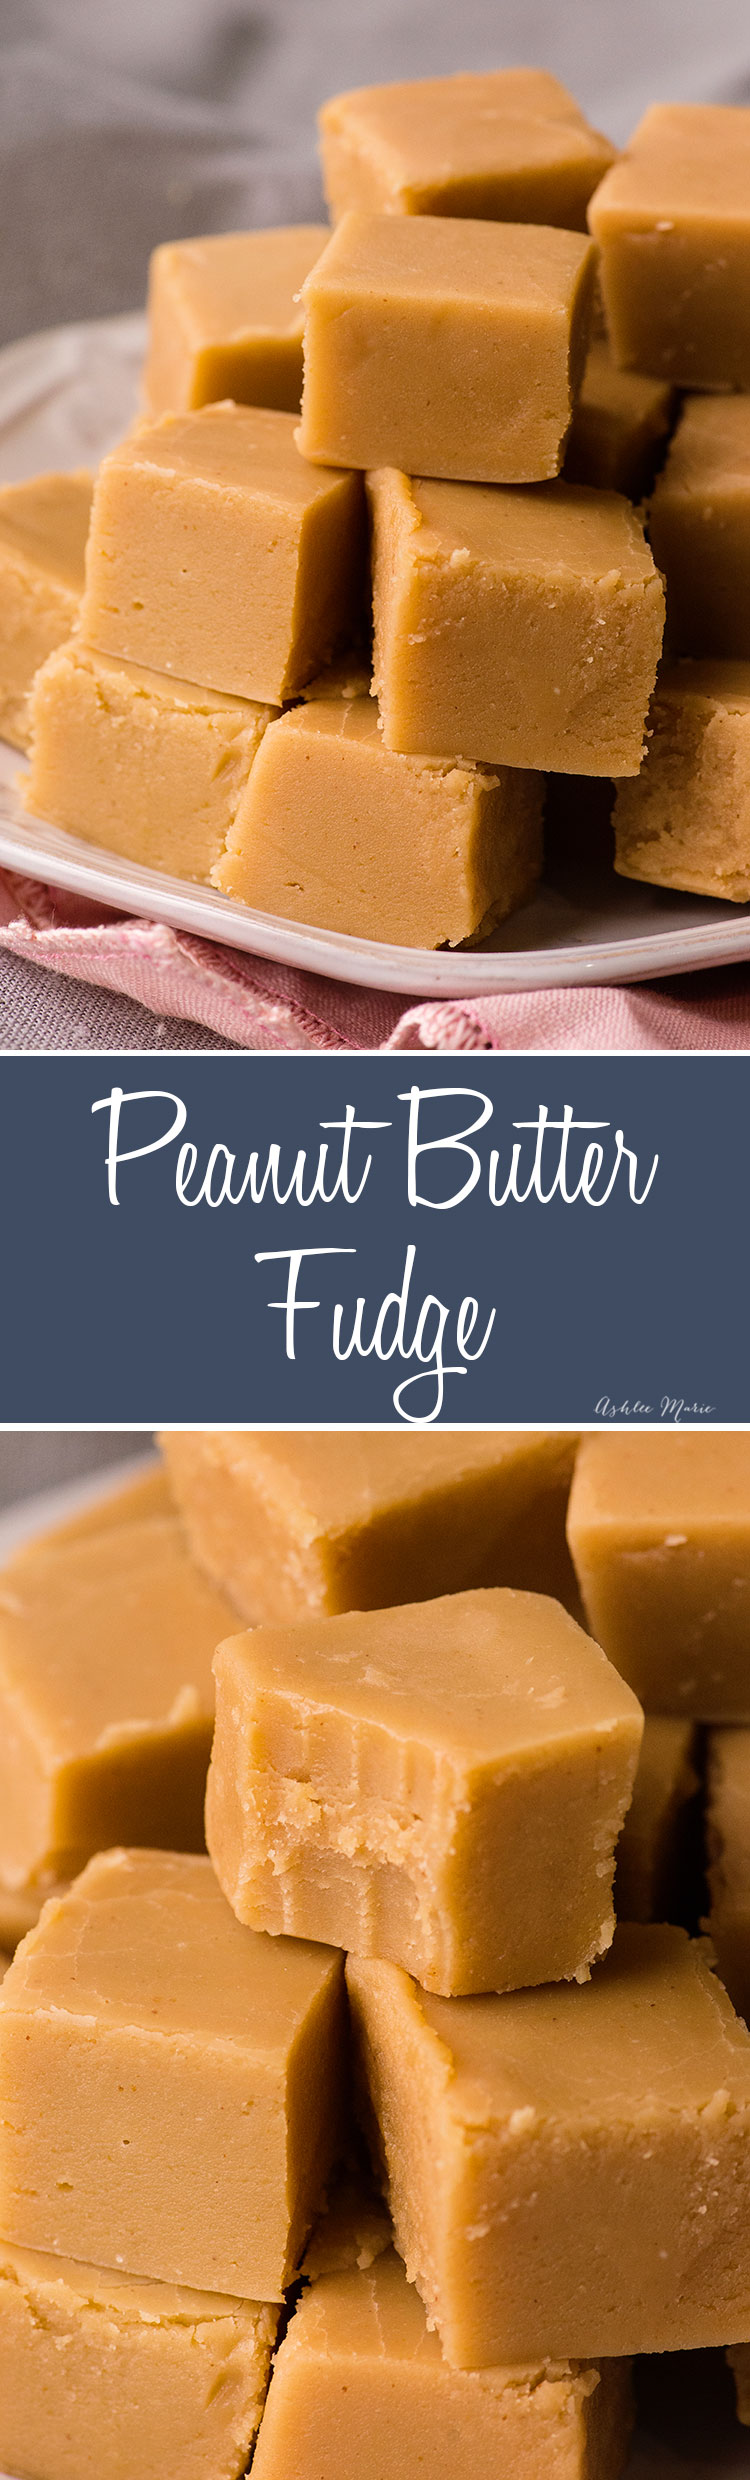 how to make the perfect homemade peanut butter fudge - recipe and video tutorial